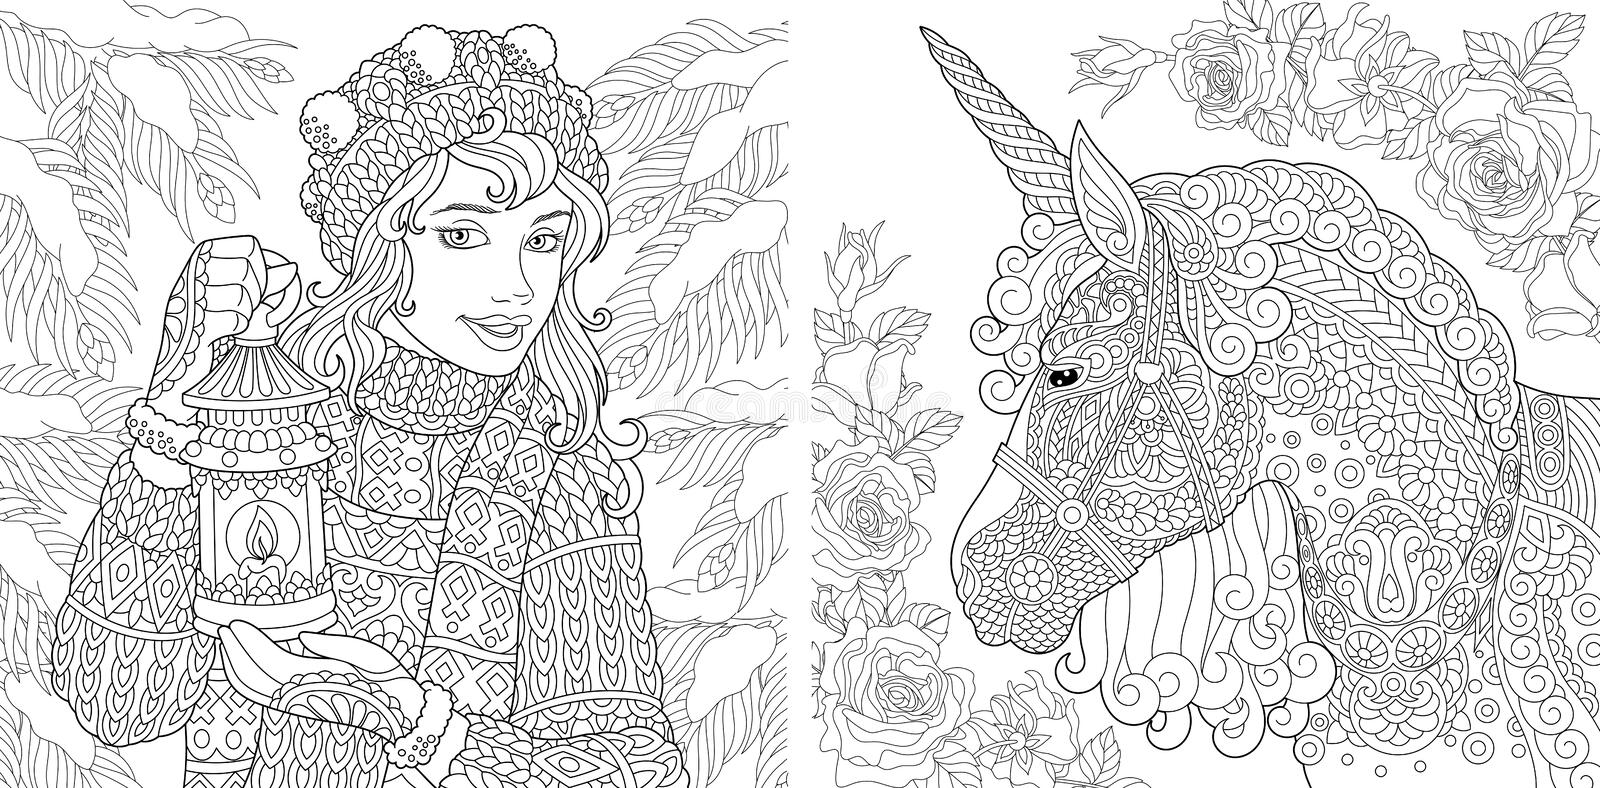 Fantasy Coloring Pages. Coloring Book for adults. Colouring pictures with winter girl and magic unicorn. Antistress freehand royalty free stock photos